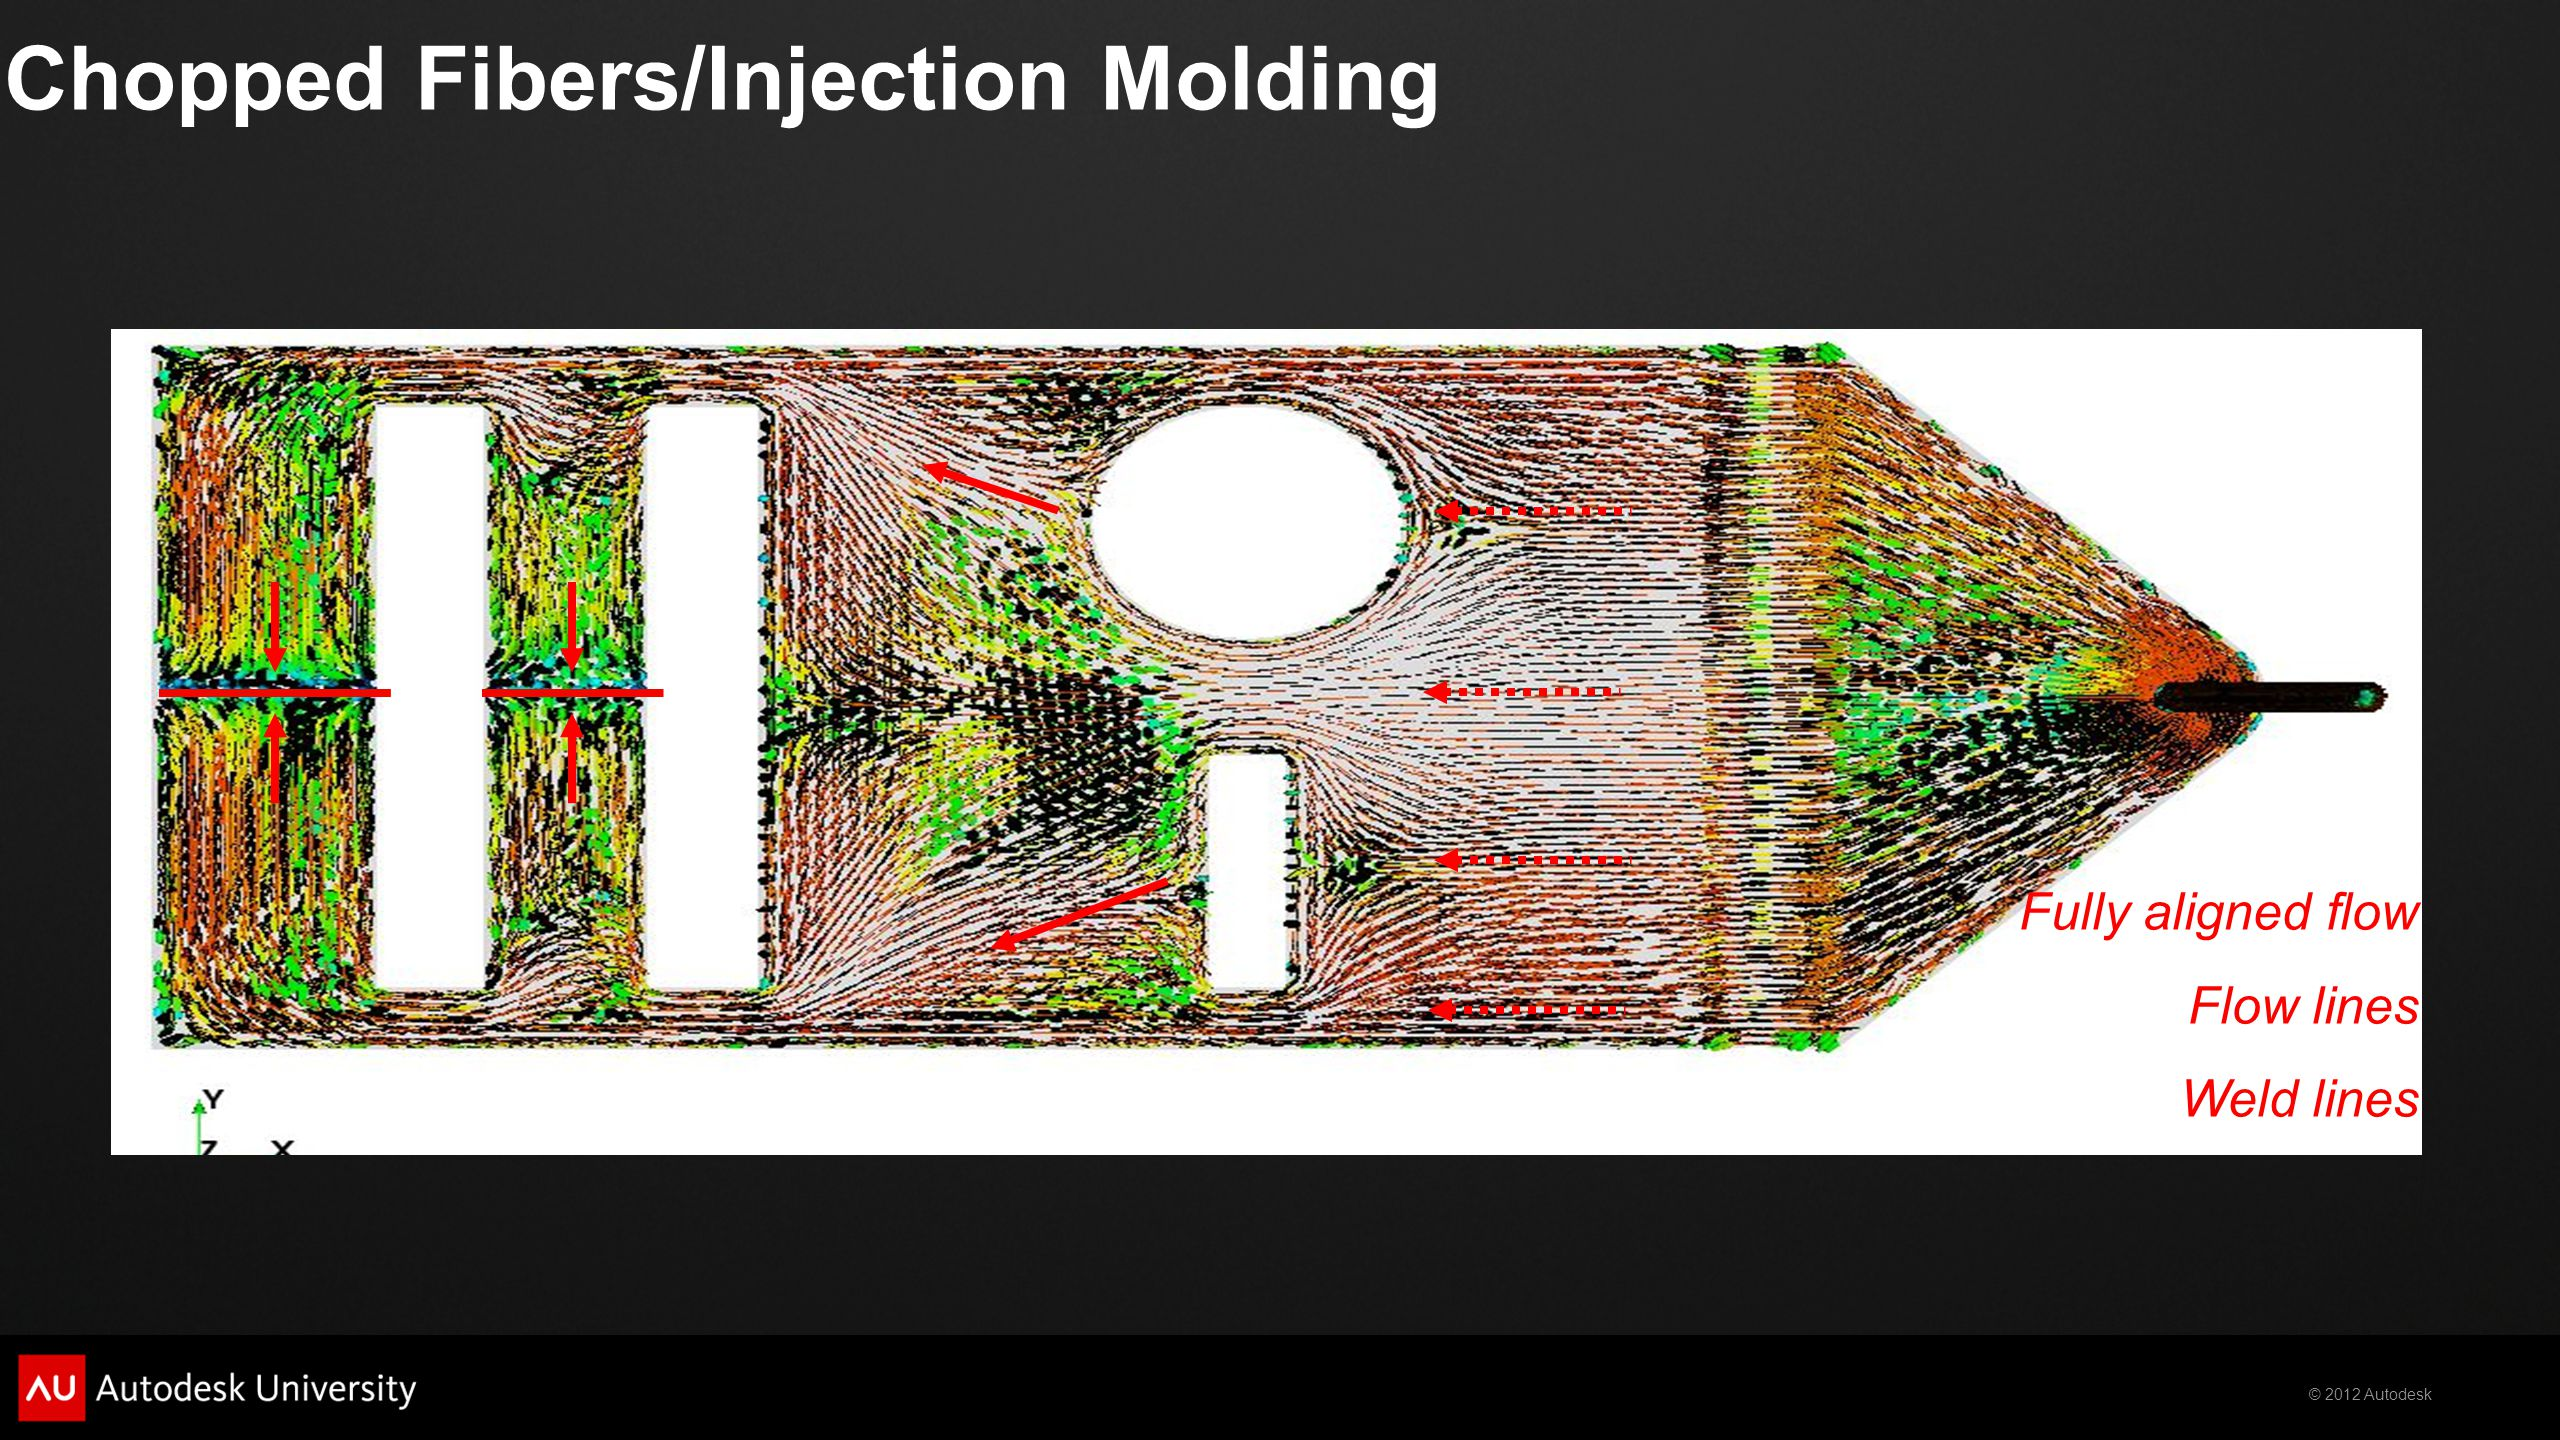 Chopped Fibers/Injection Molding